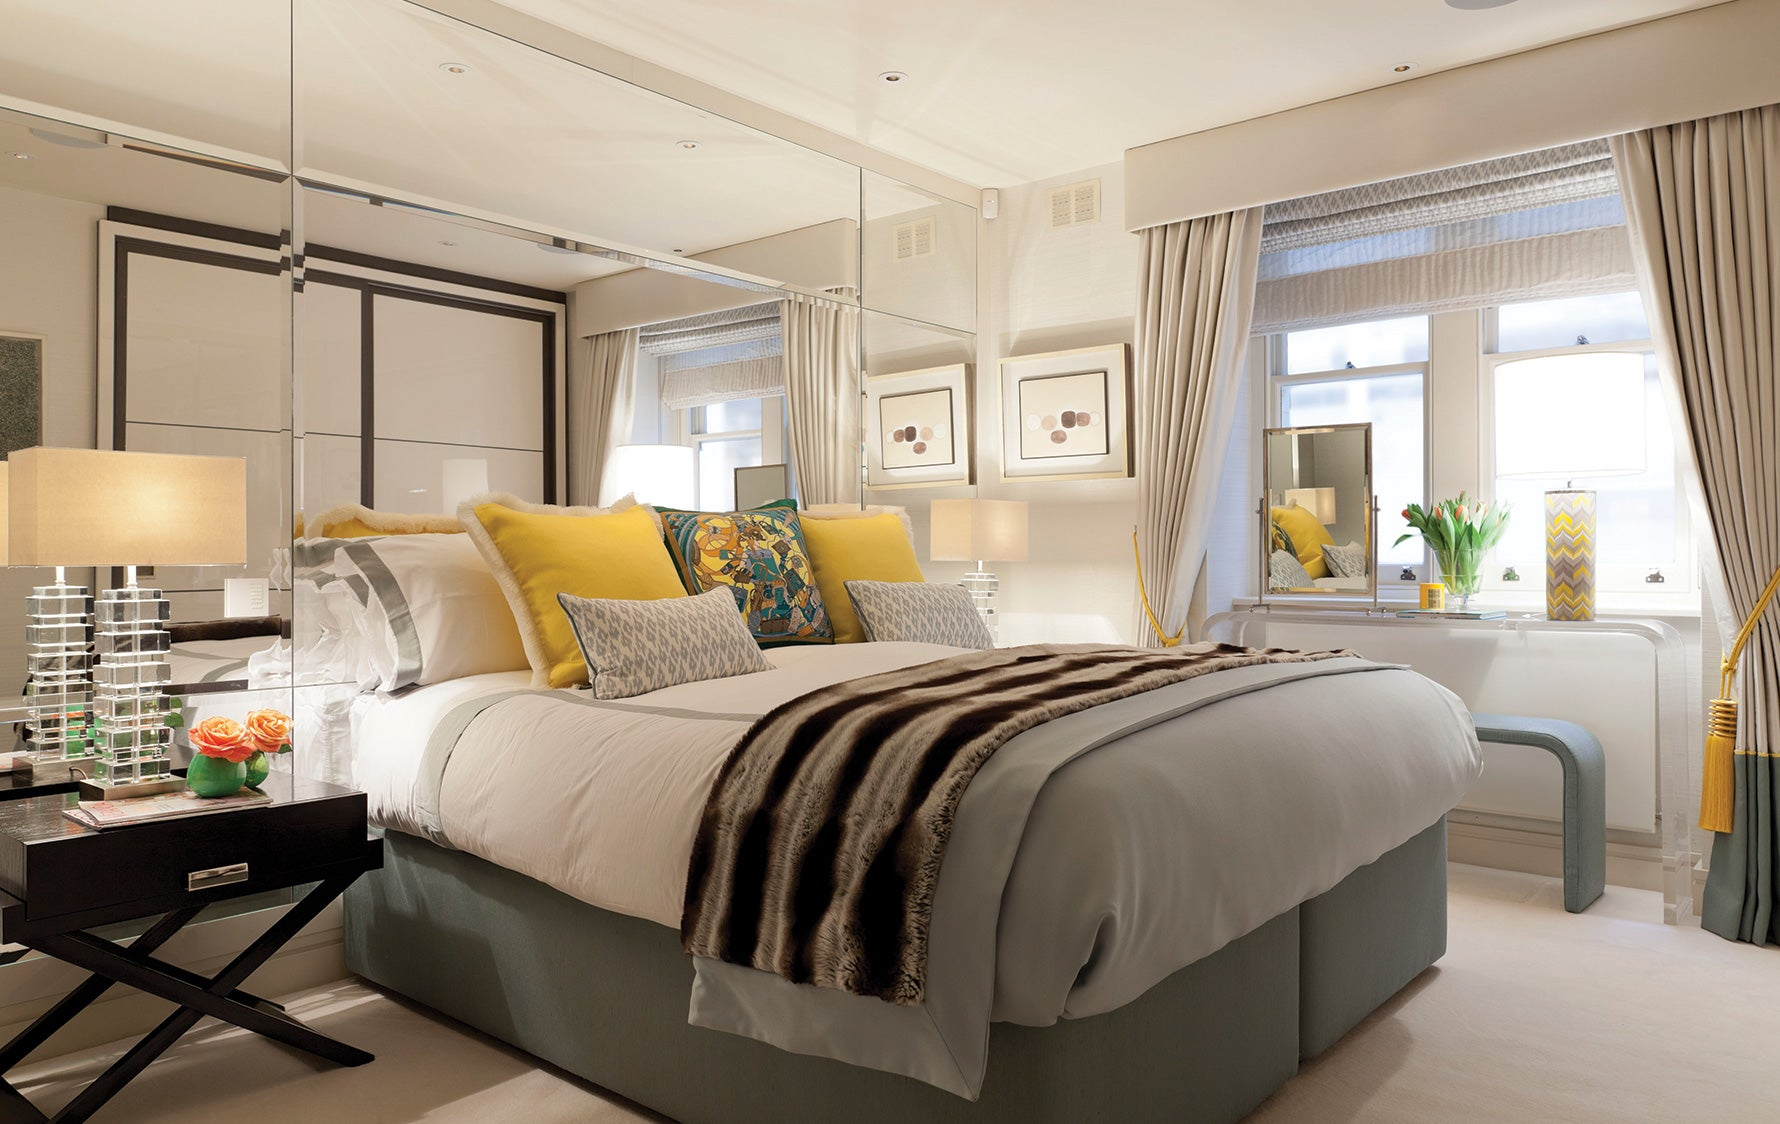 Headboard Alternatives | Mirrored Headboards | Bedroom interior by Taylor Howes | Luxury Bedroom Design| Read more in the LuxDeco.com Style Guide